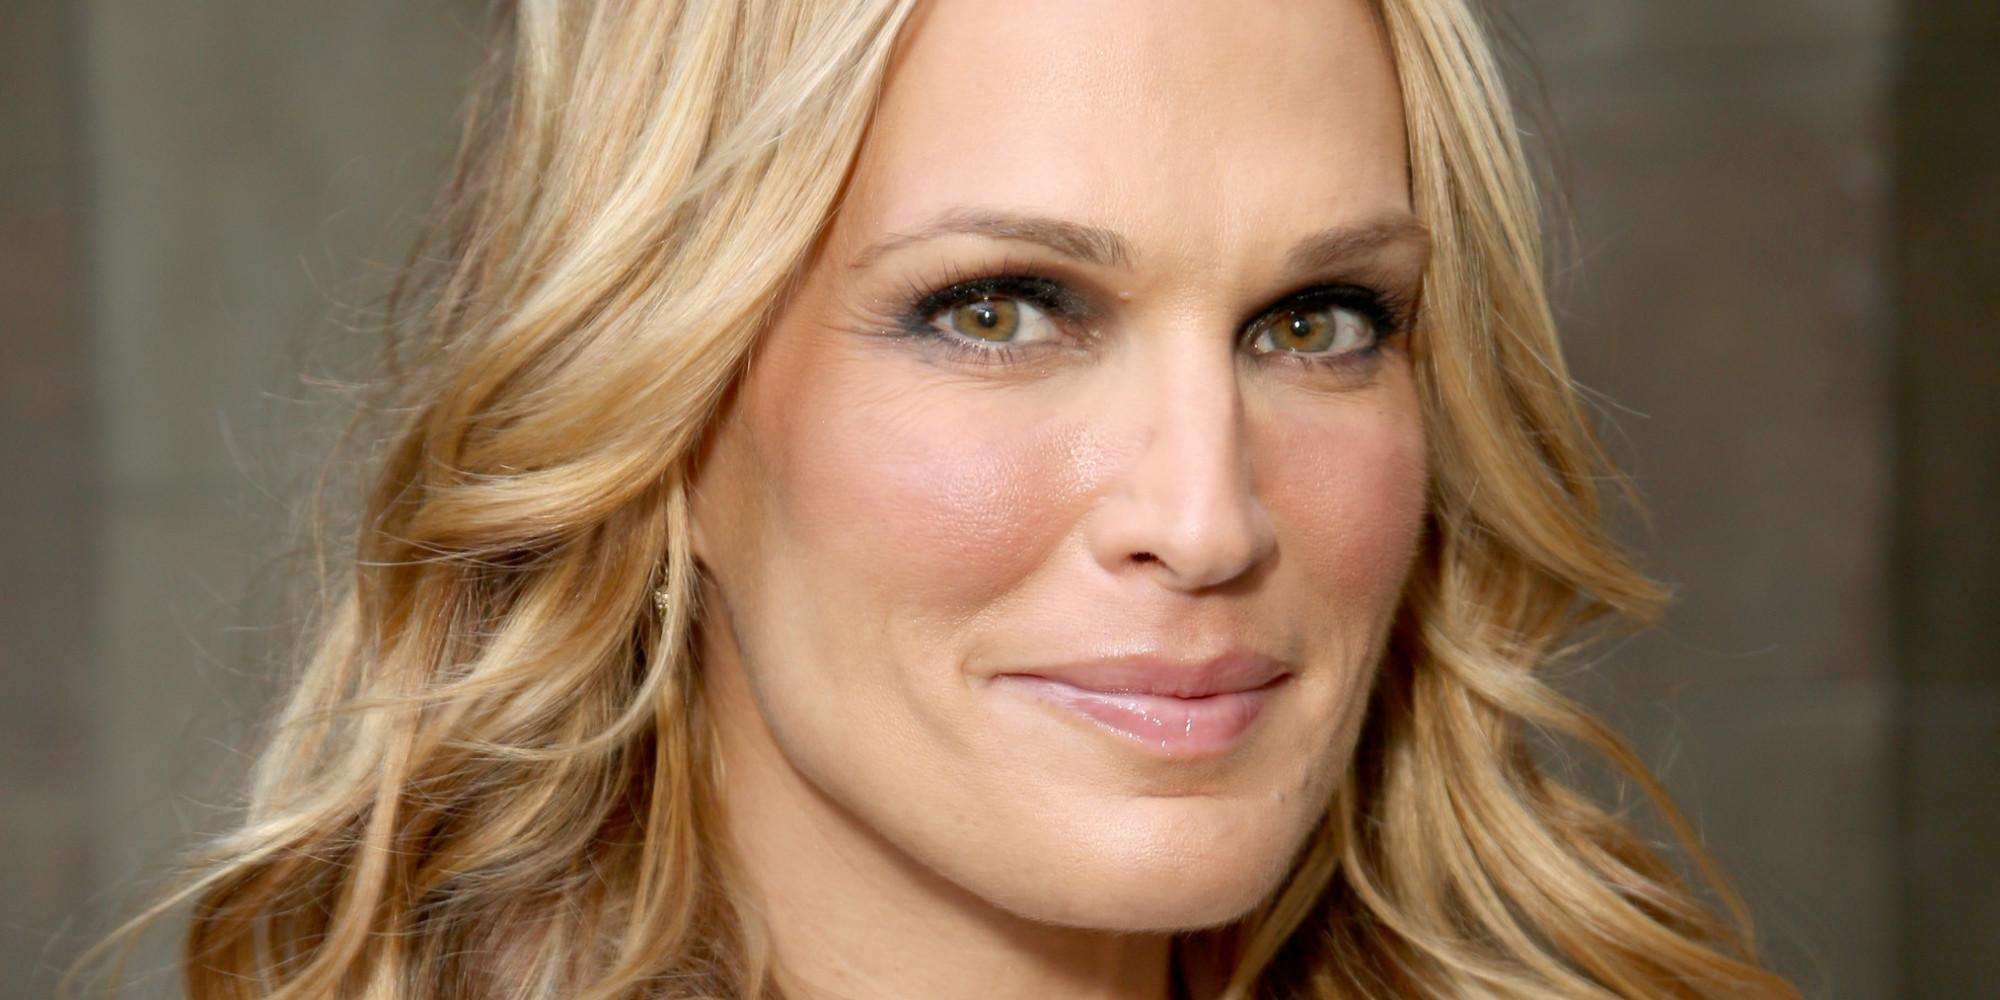 Supermodel Molly Sims Talks Old-Fashioned, Southern Parenting Values